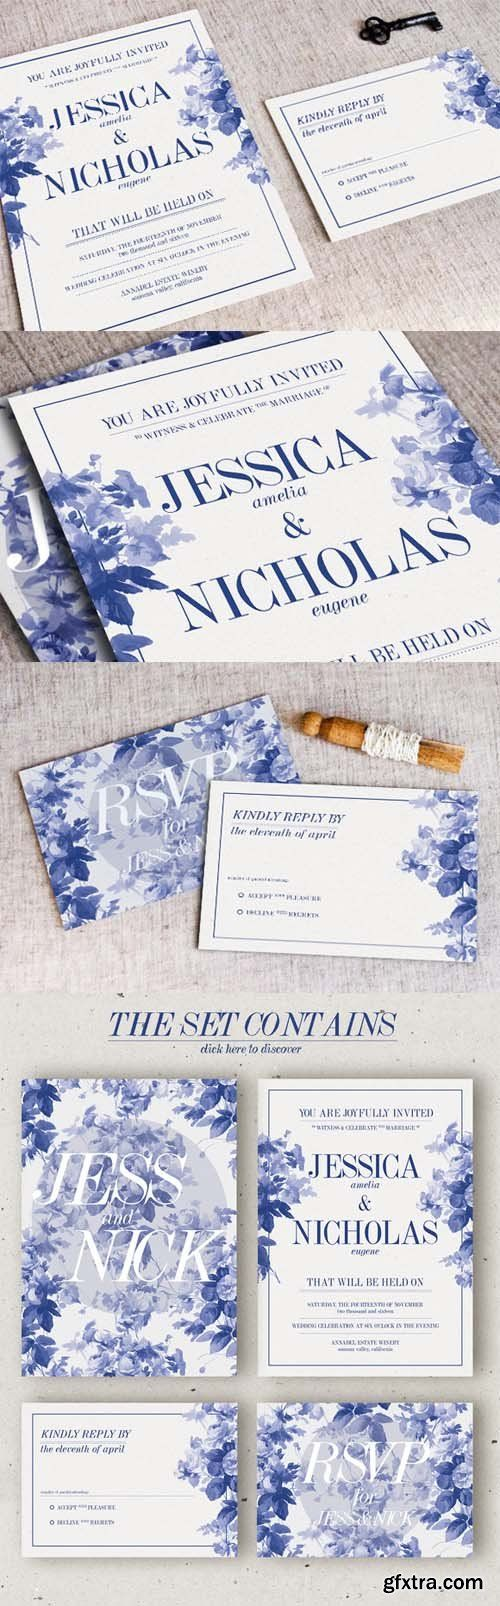 443 Best Wedding Invites Images On Pinterest Invites Wedding